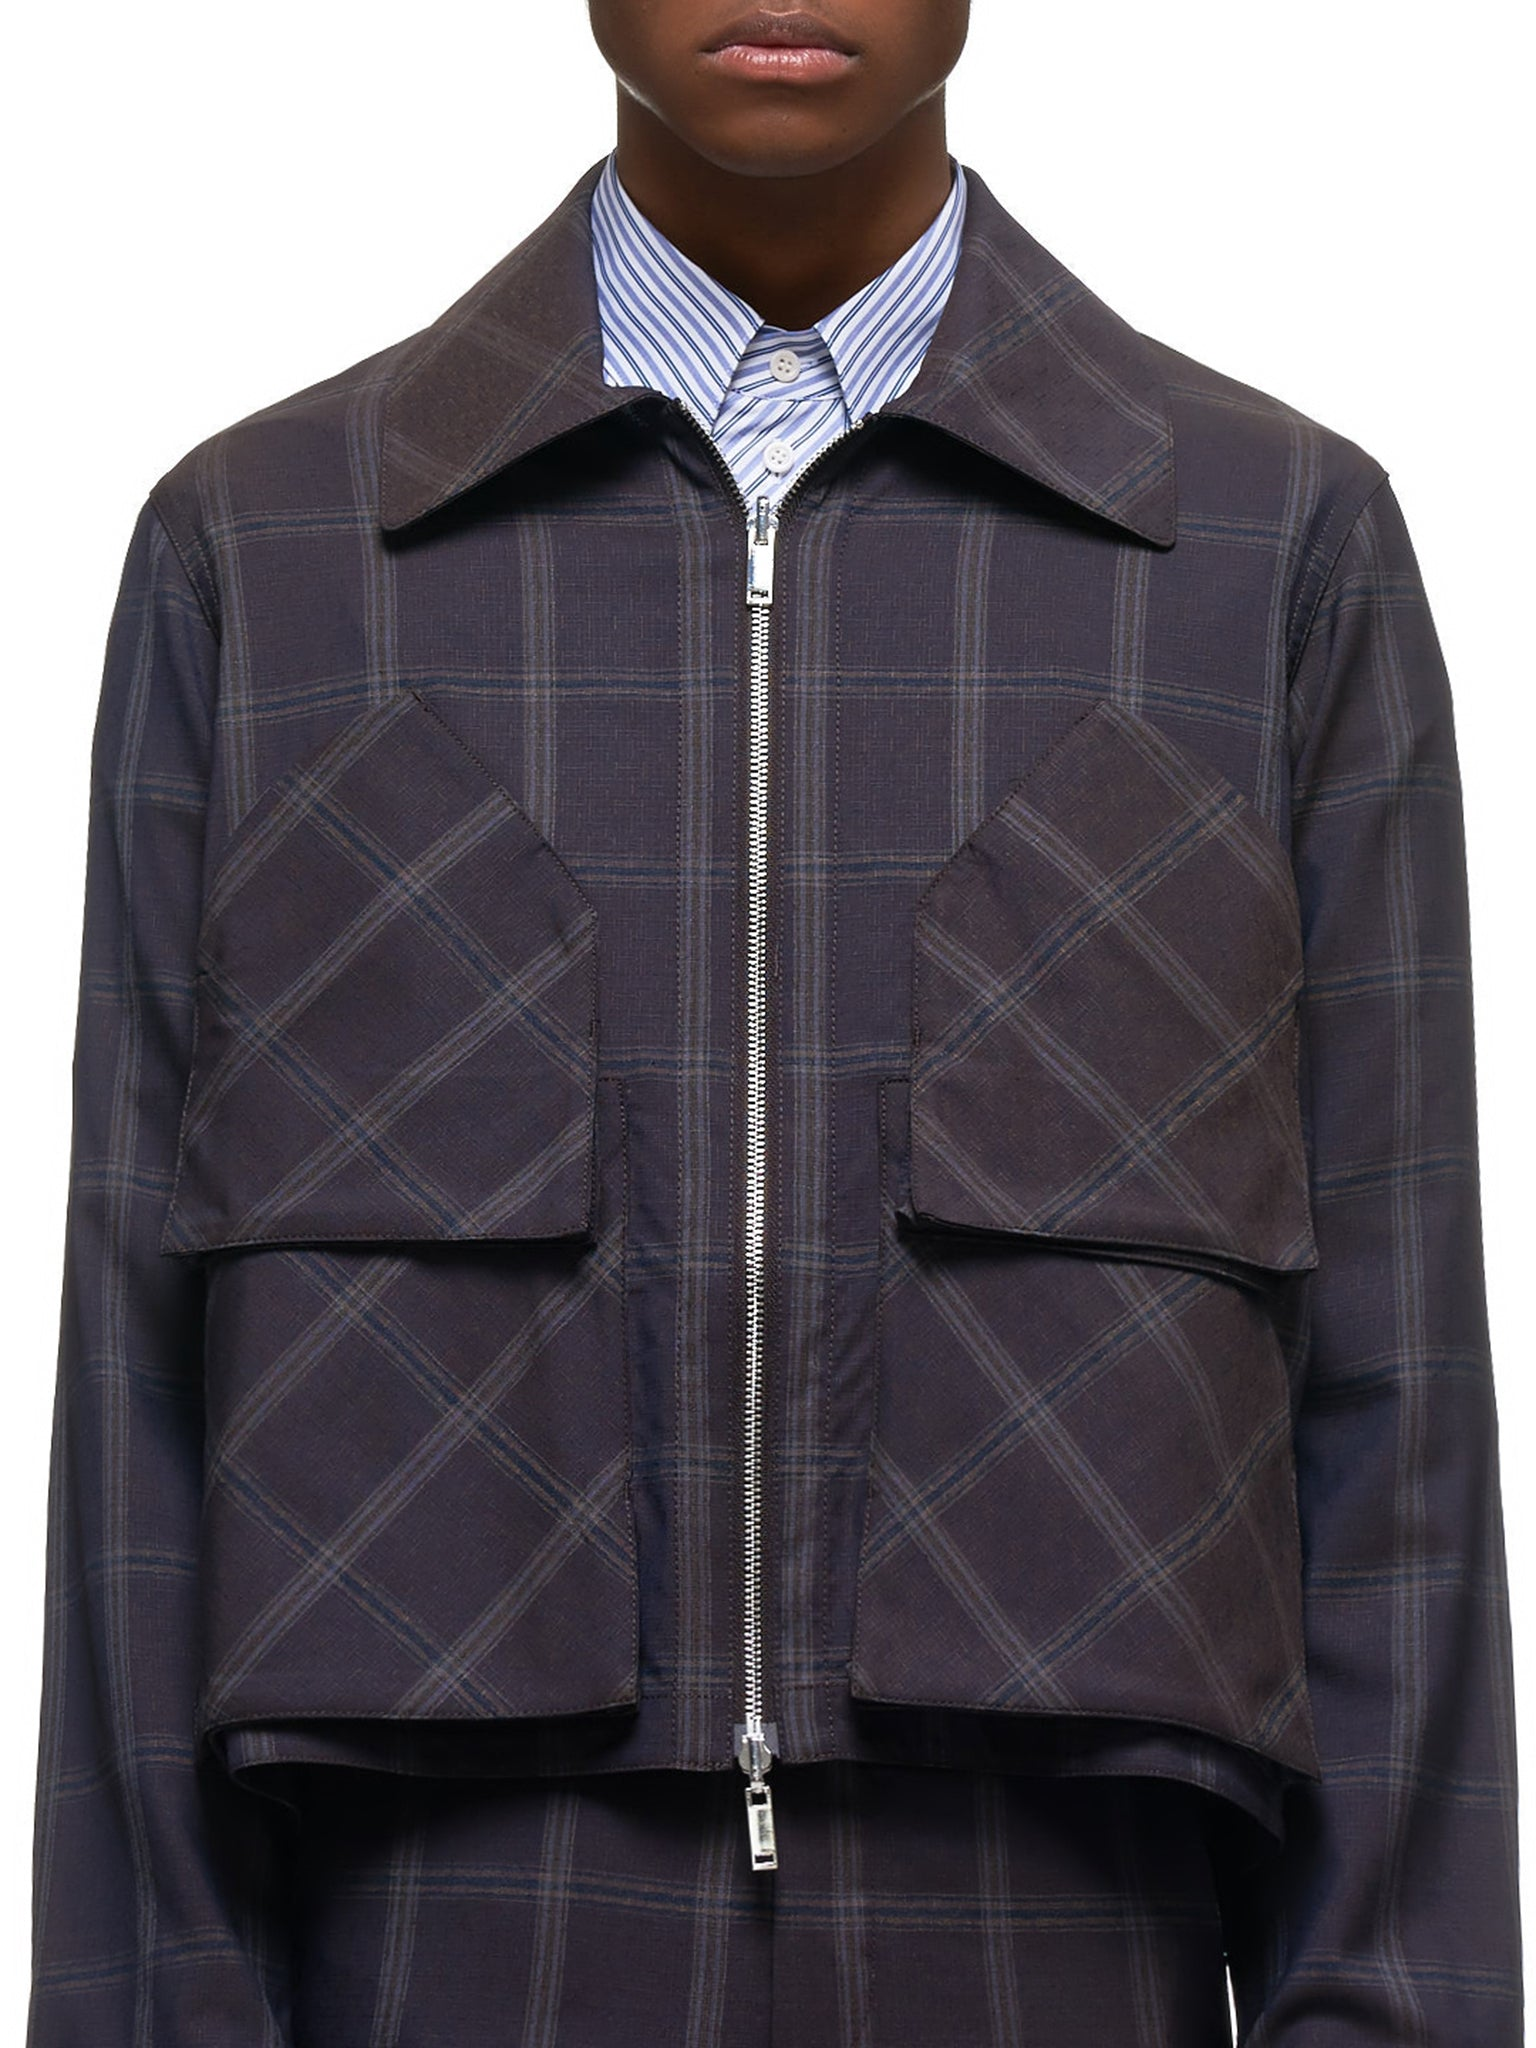 Cornerstone Jacket - Hlorenzo Detail 1